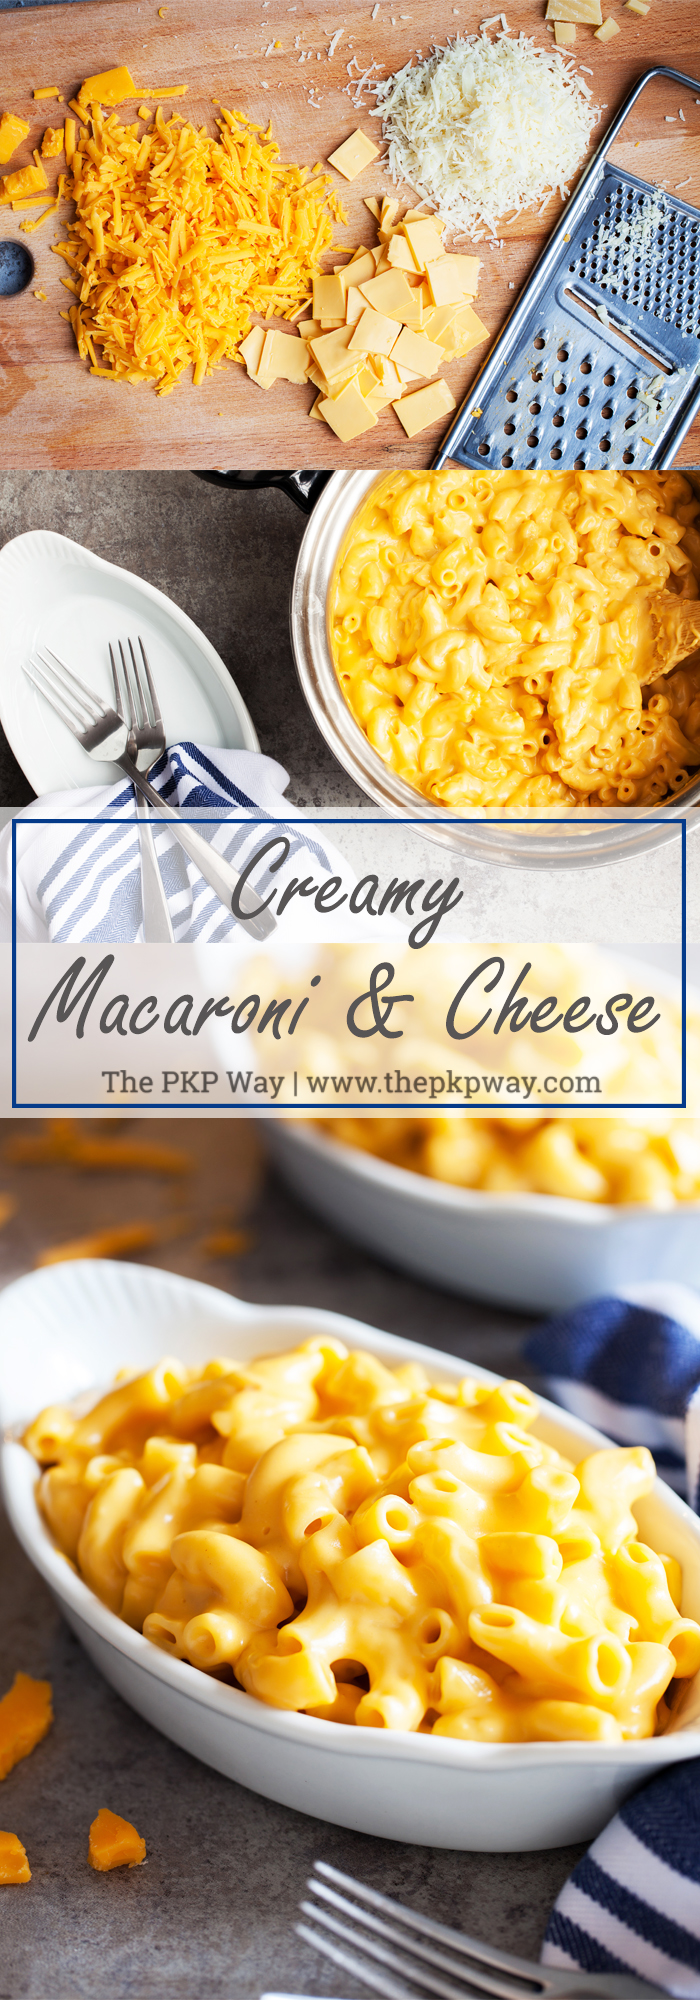 With some unexpected ingredients, you too can make deliciously tangy, ultra-smooth and­­ Creamy Macaroni and Cheese.